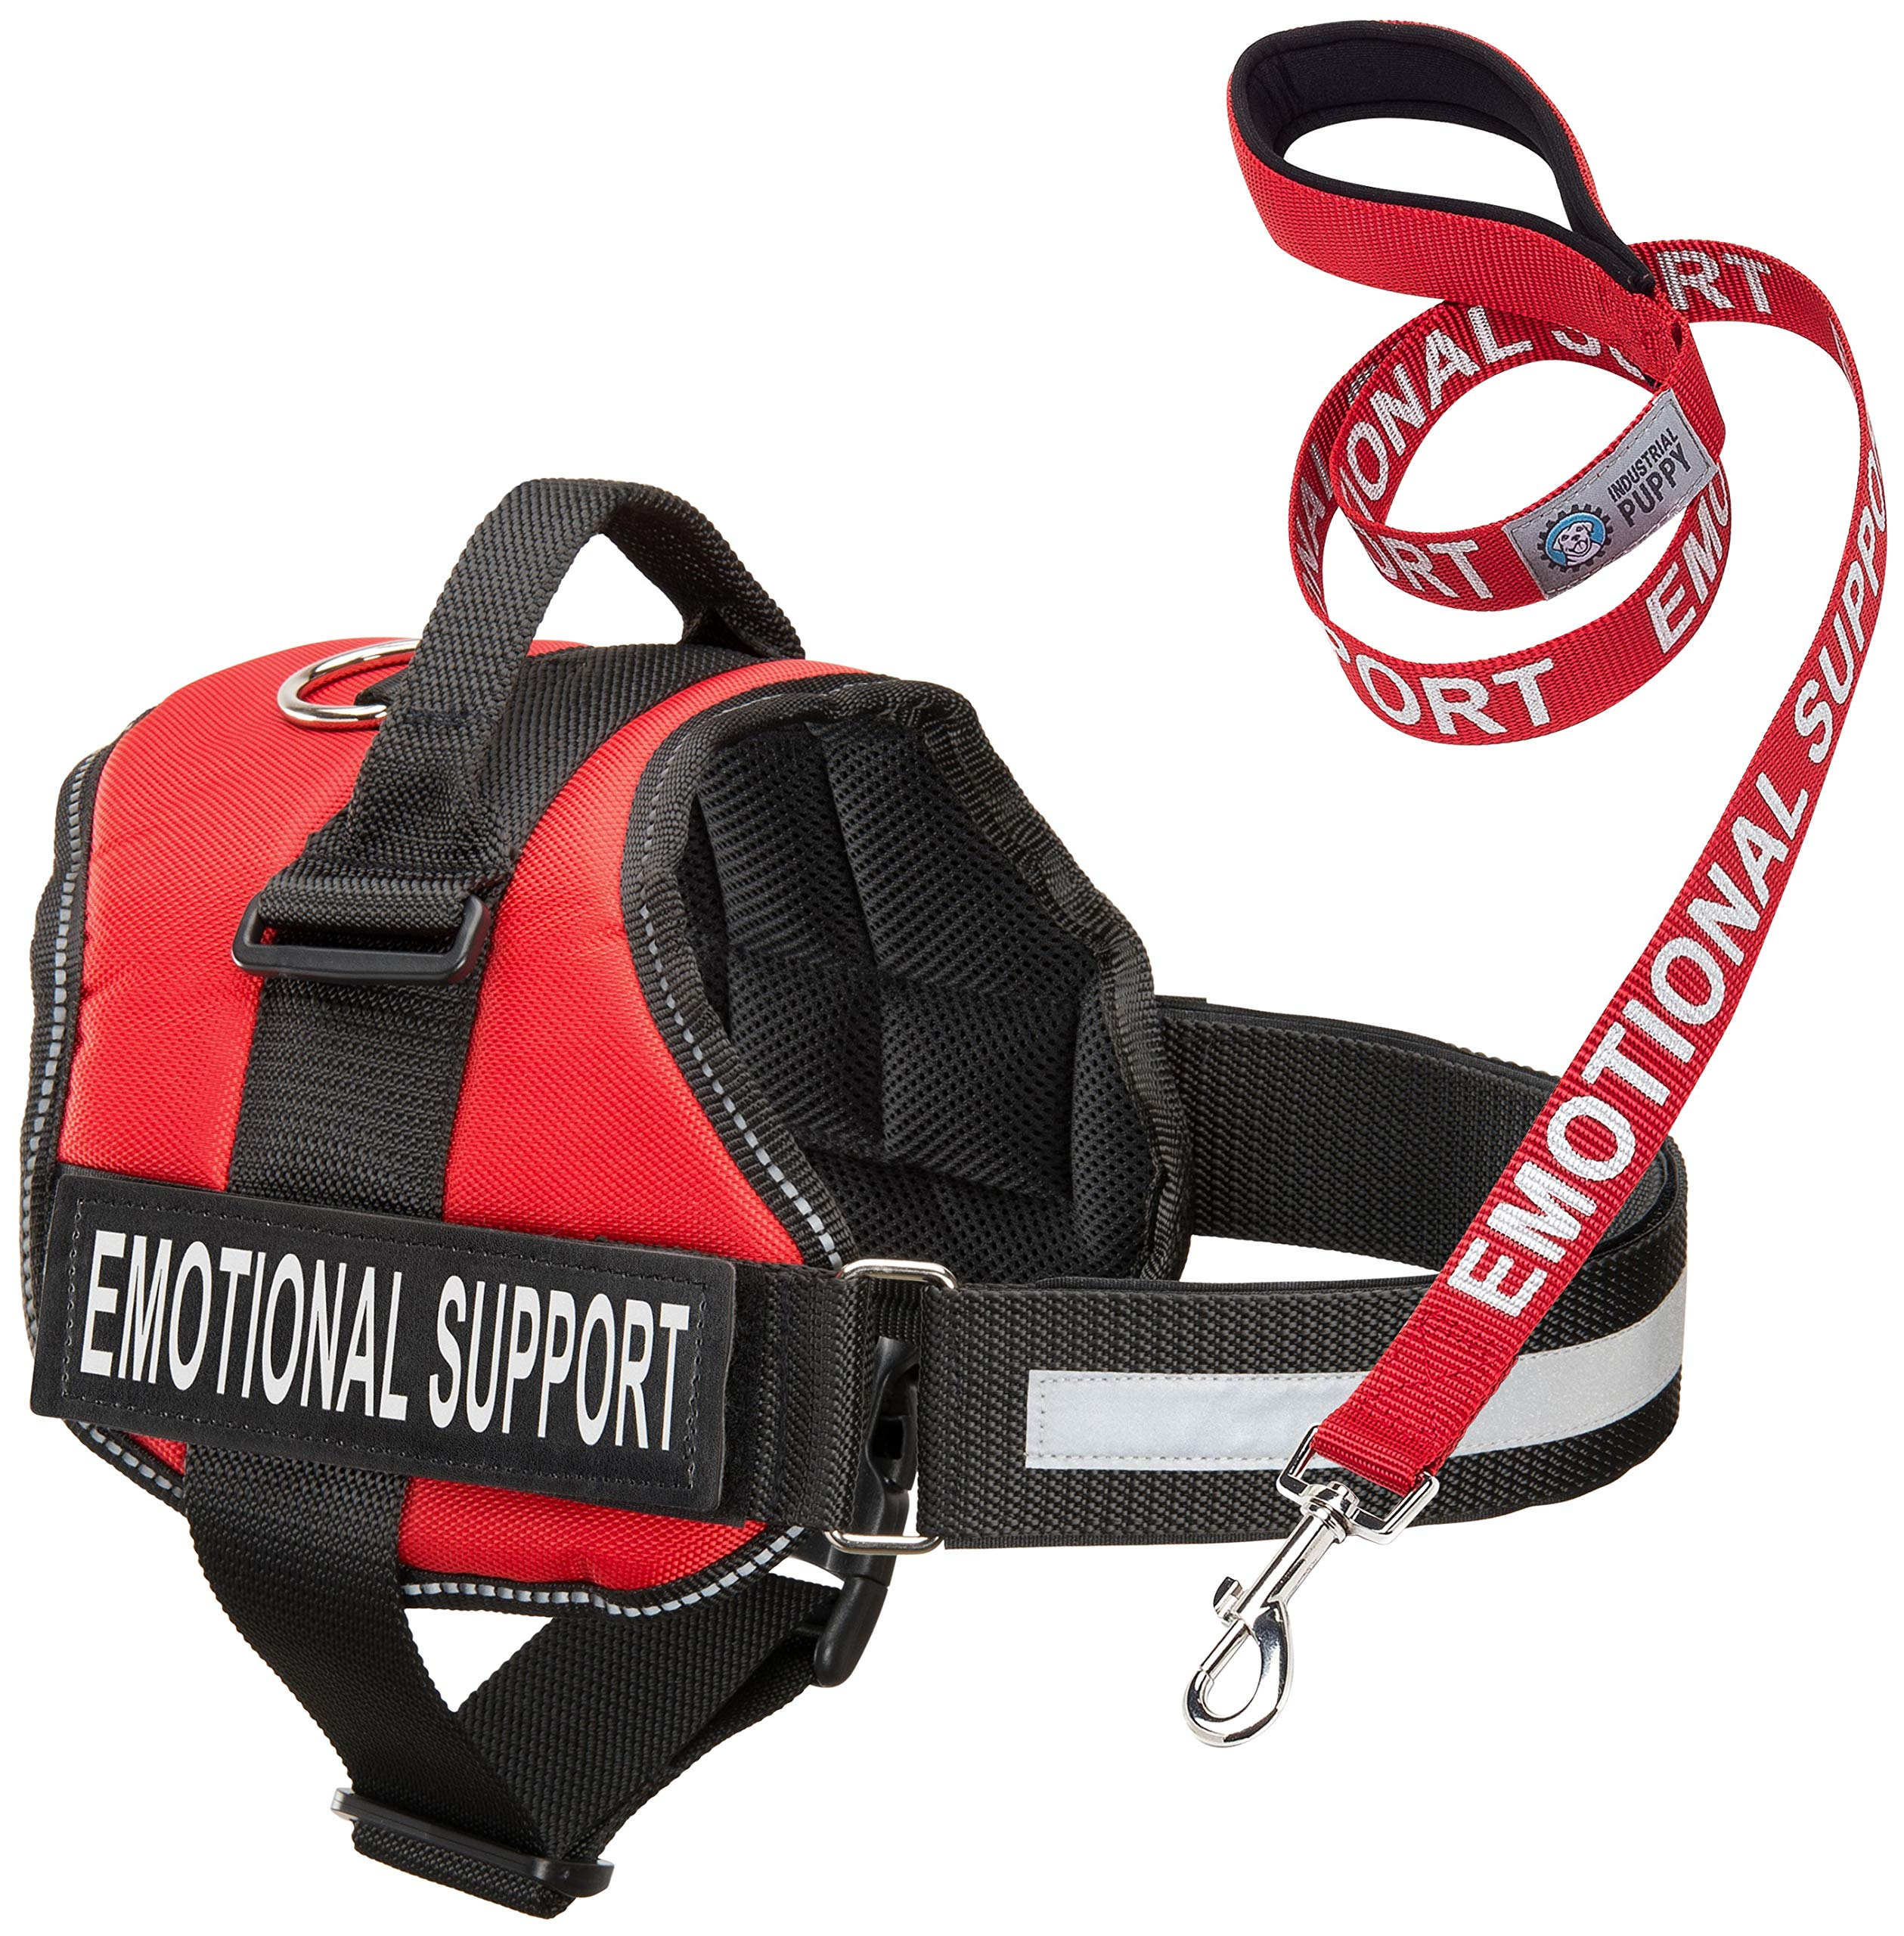 Emotional Support Dog Vest Harness with Reflective Straps, Patches, and Matching ESA Leash Set - ESA Dog Vest in 8 Sizes - Heavy Duty Vest for Working or in Training Dogs (Red, XXS)